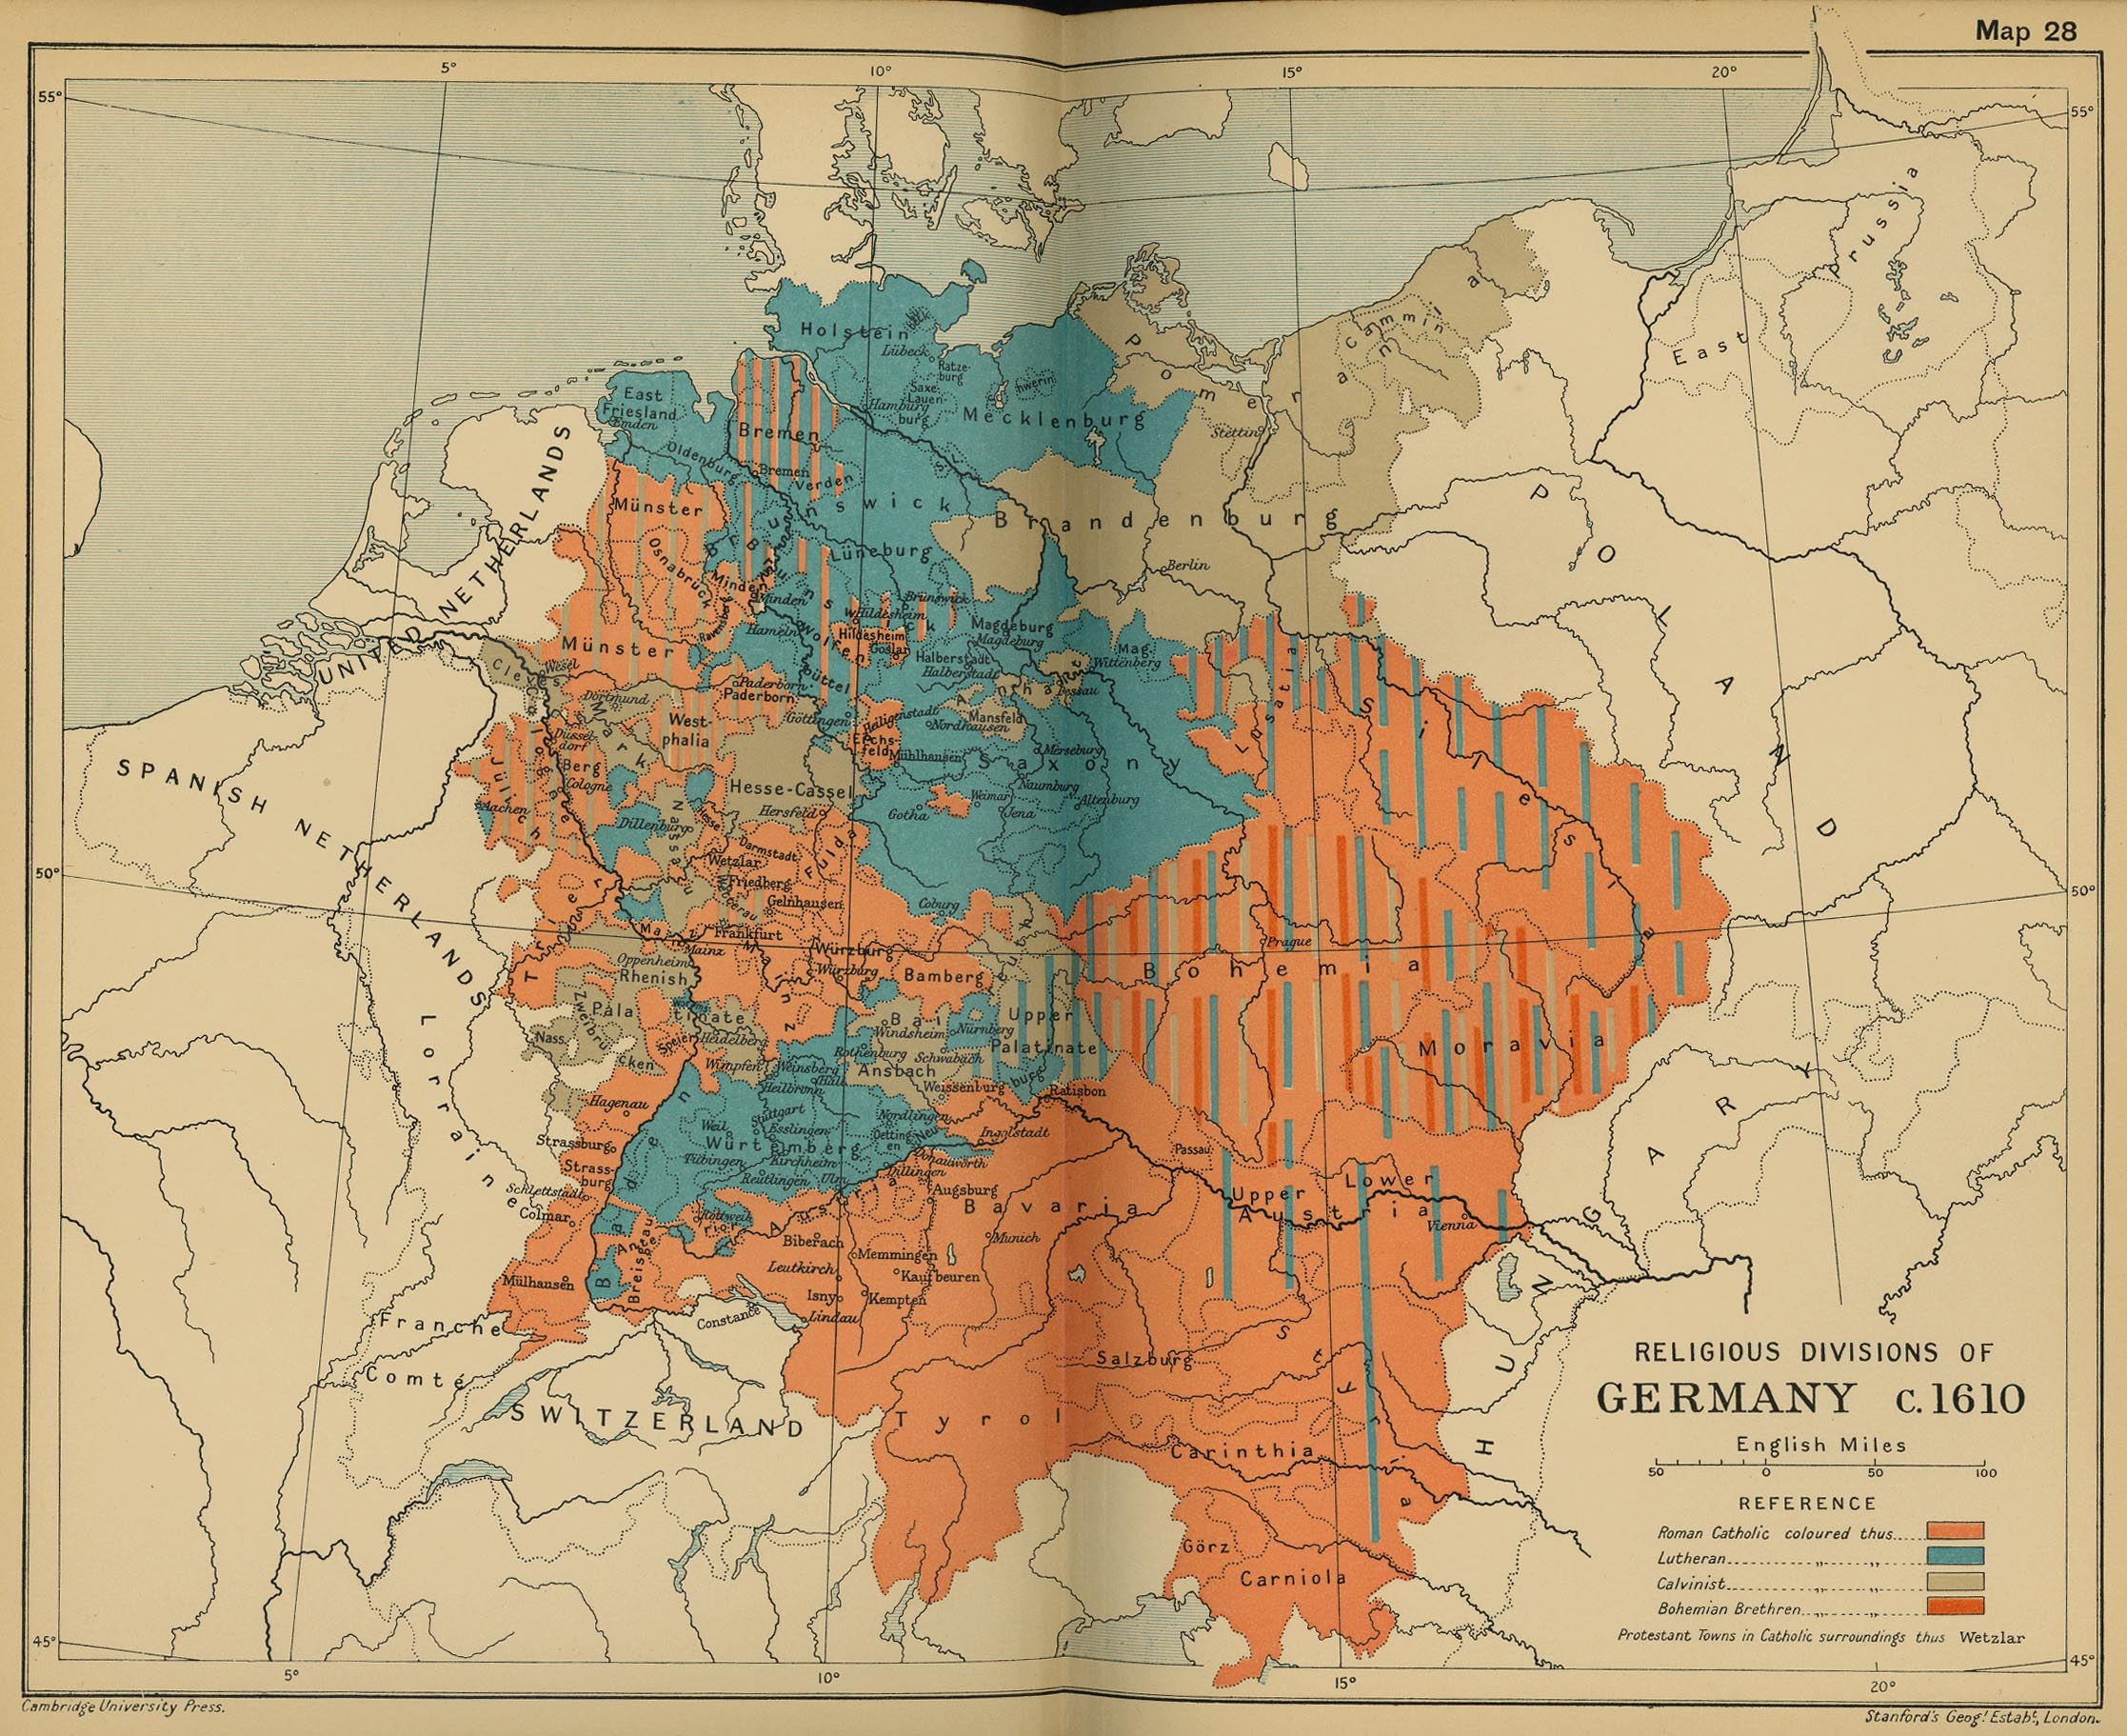 Map Of Germany 1610 Religion